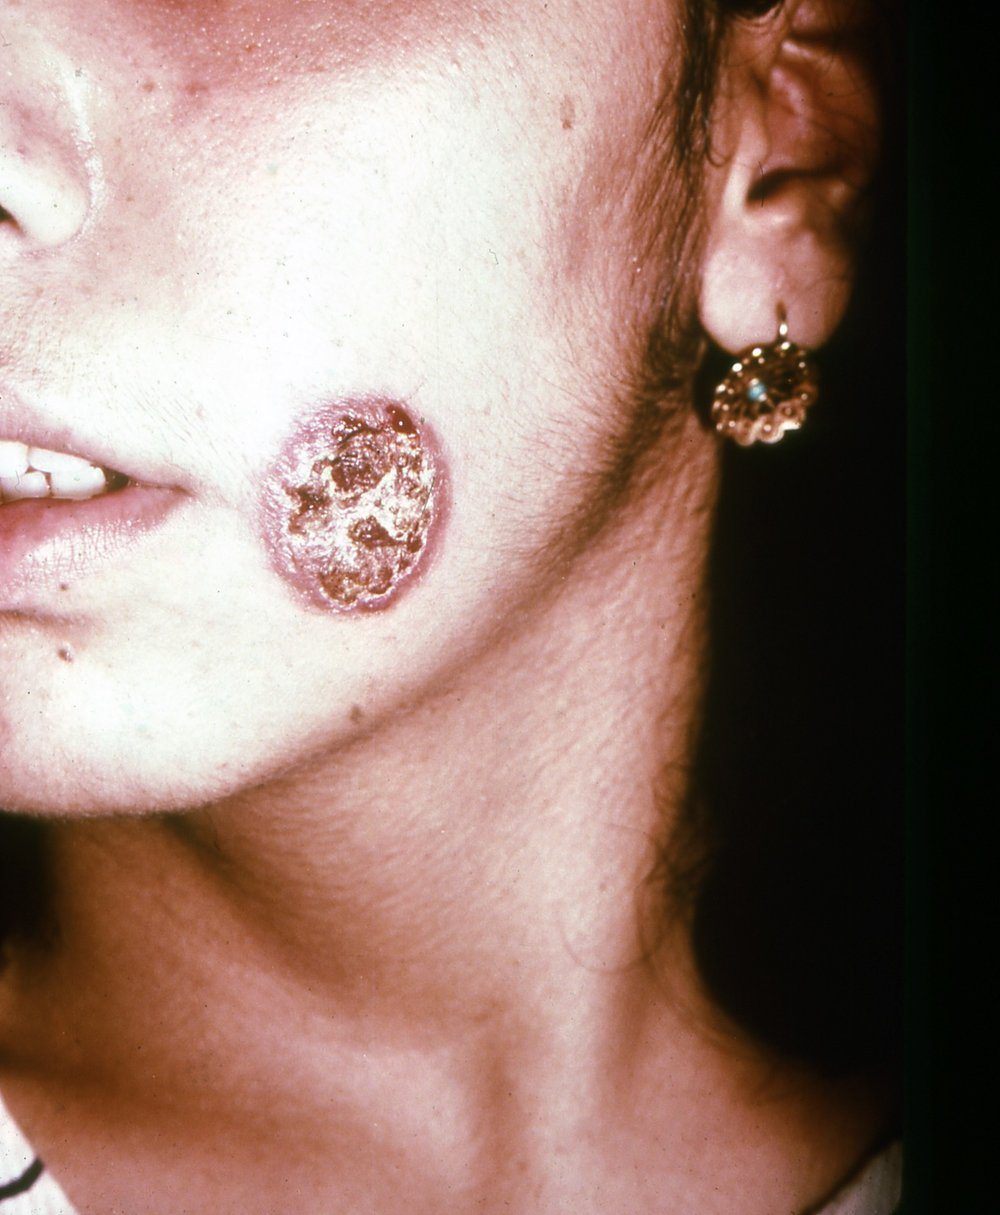 Cutaneous leishmaniasis, old lesion.